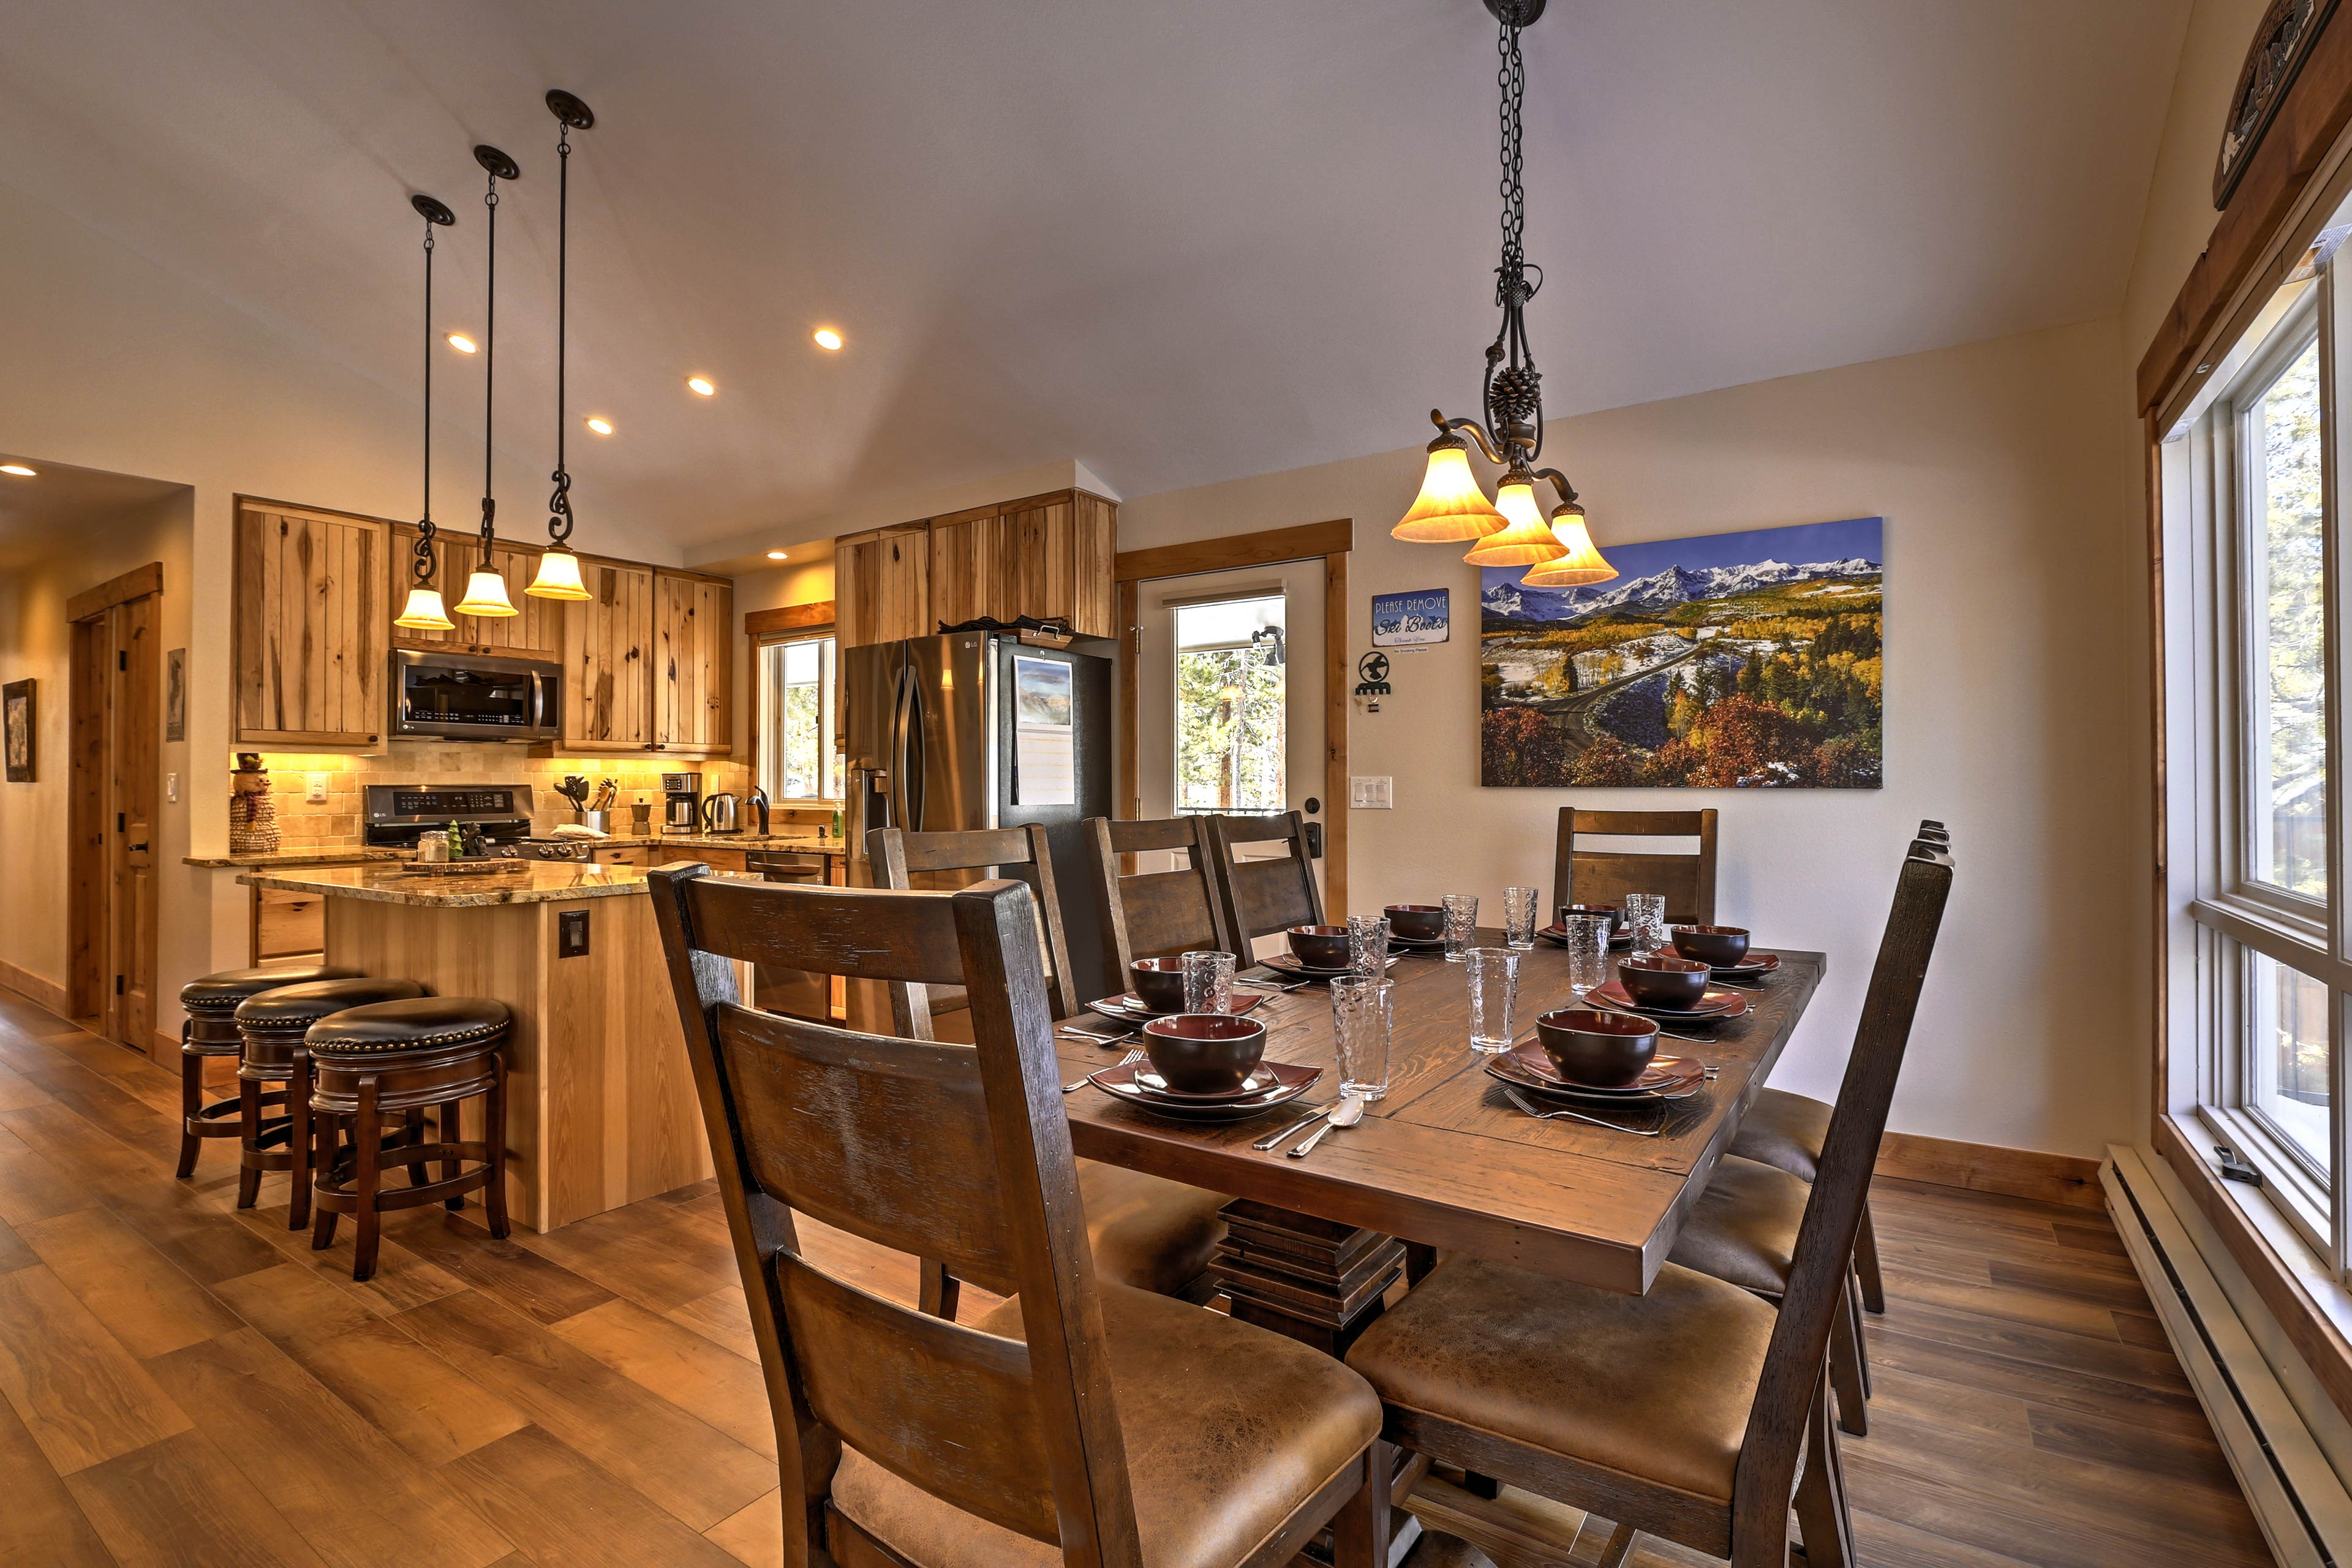 The large dining table can accommodate your group as you enjoy a delicious meal.